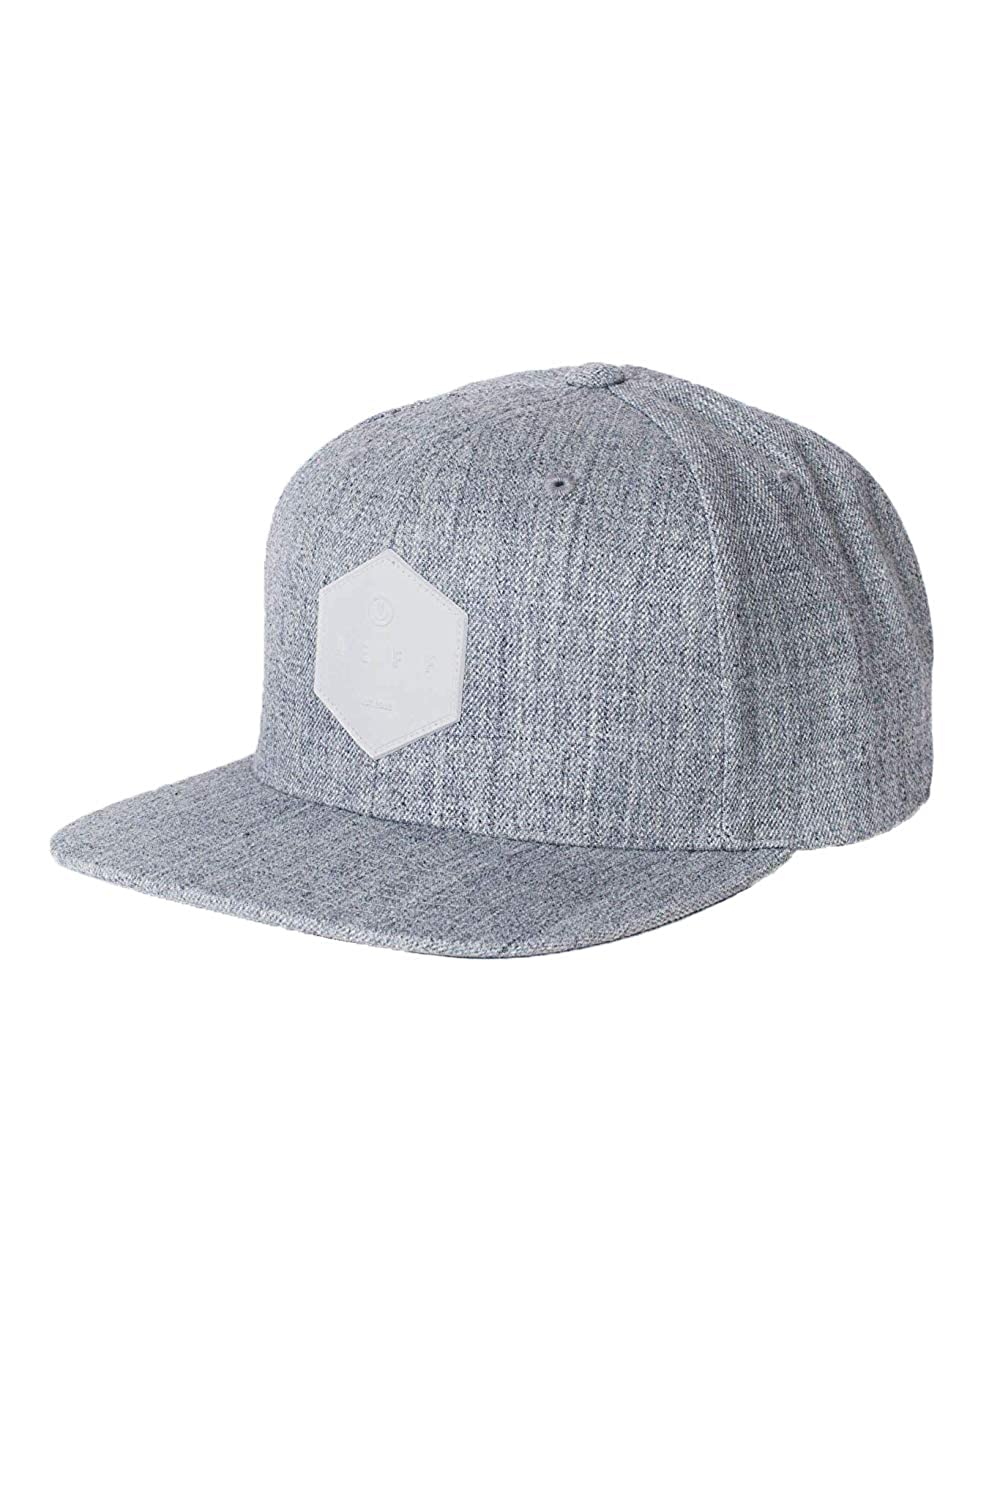 Neff Gorras Y Cap Heather Grey Snapback: Amazon.es: Ropa y accesorios